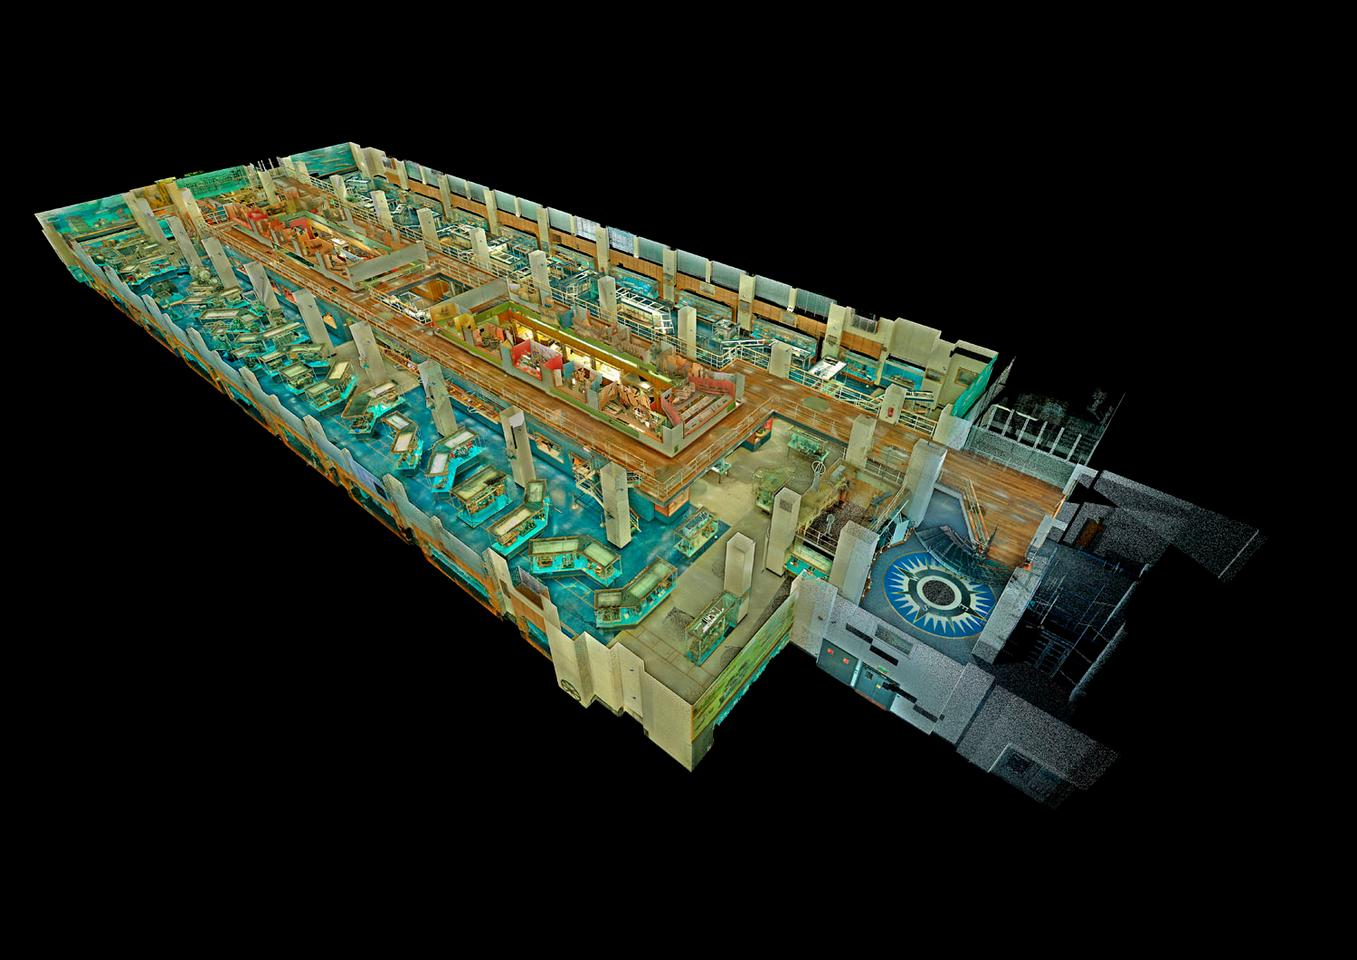 Two billion measurements were used to create the virtual gallery (Image: ScanLAB Projects Ltd)